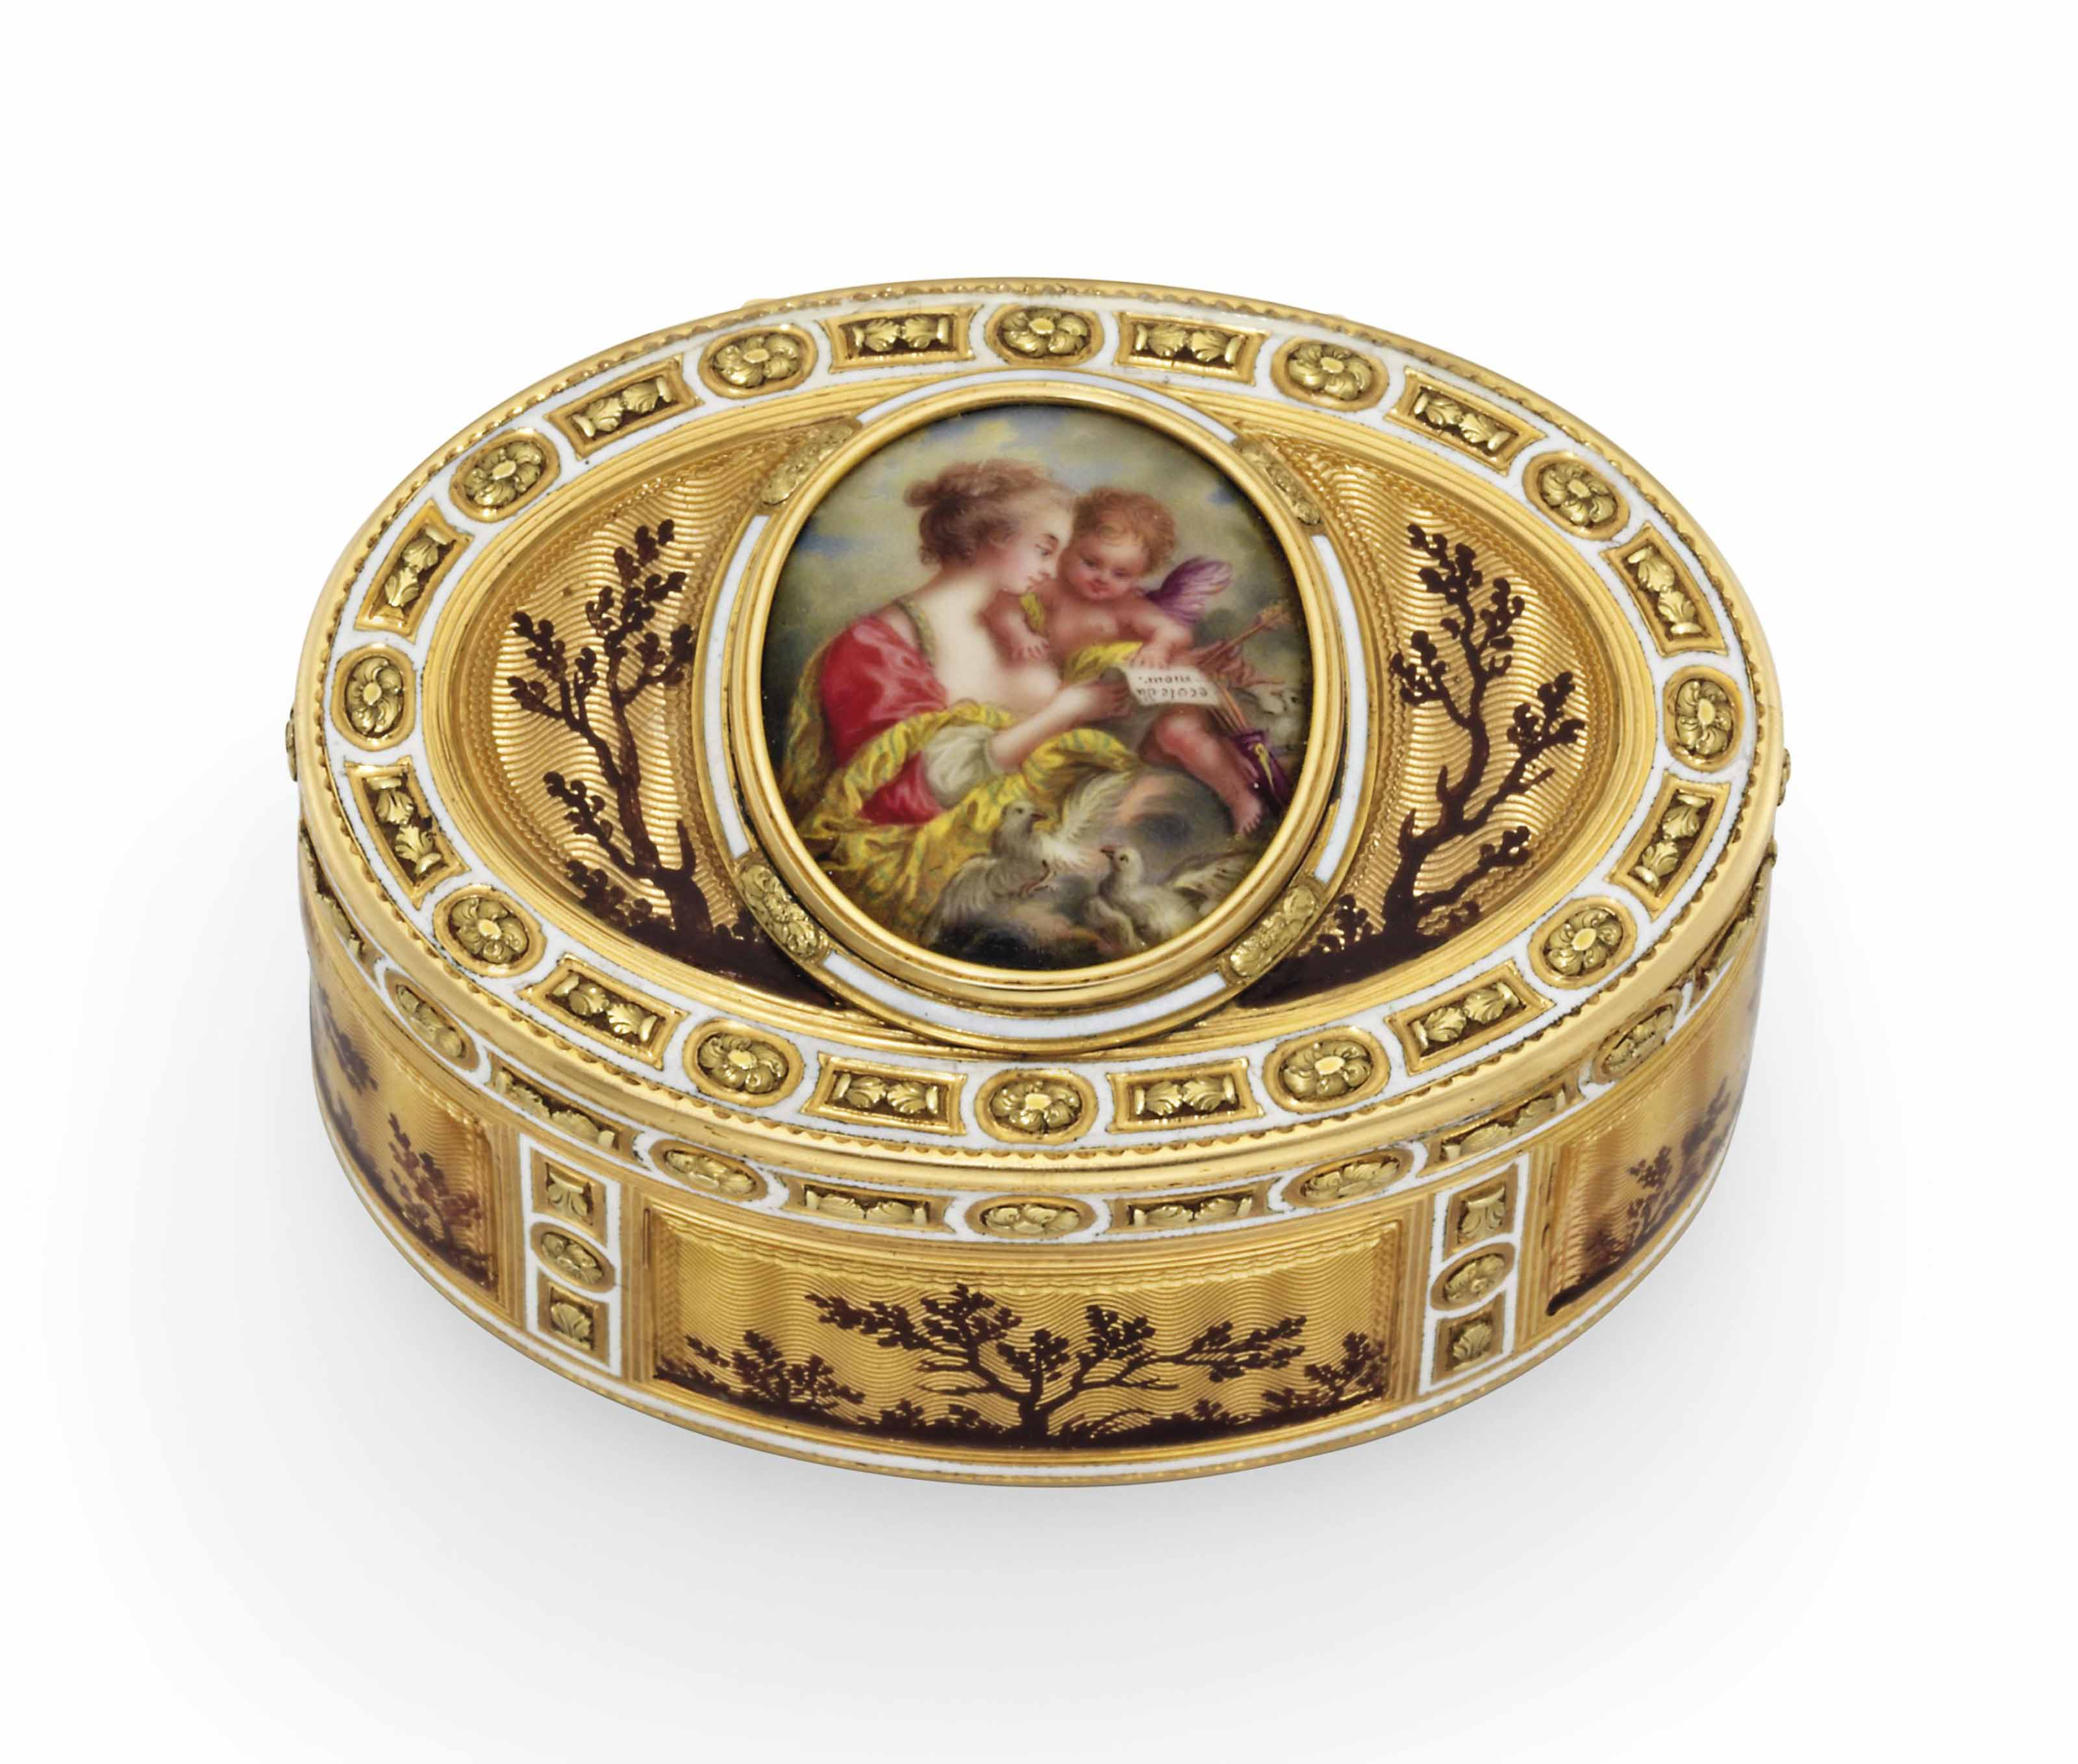 A LOUIS XVI ENAMELLED GOLD SNUFF-BOX SET WITH AN ENAMEL PLAQUE